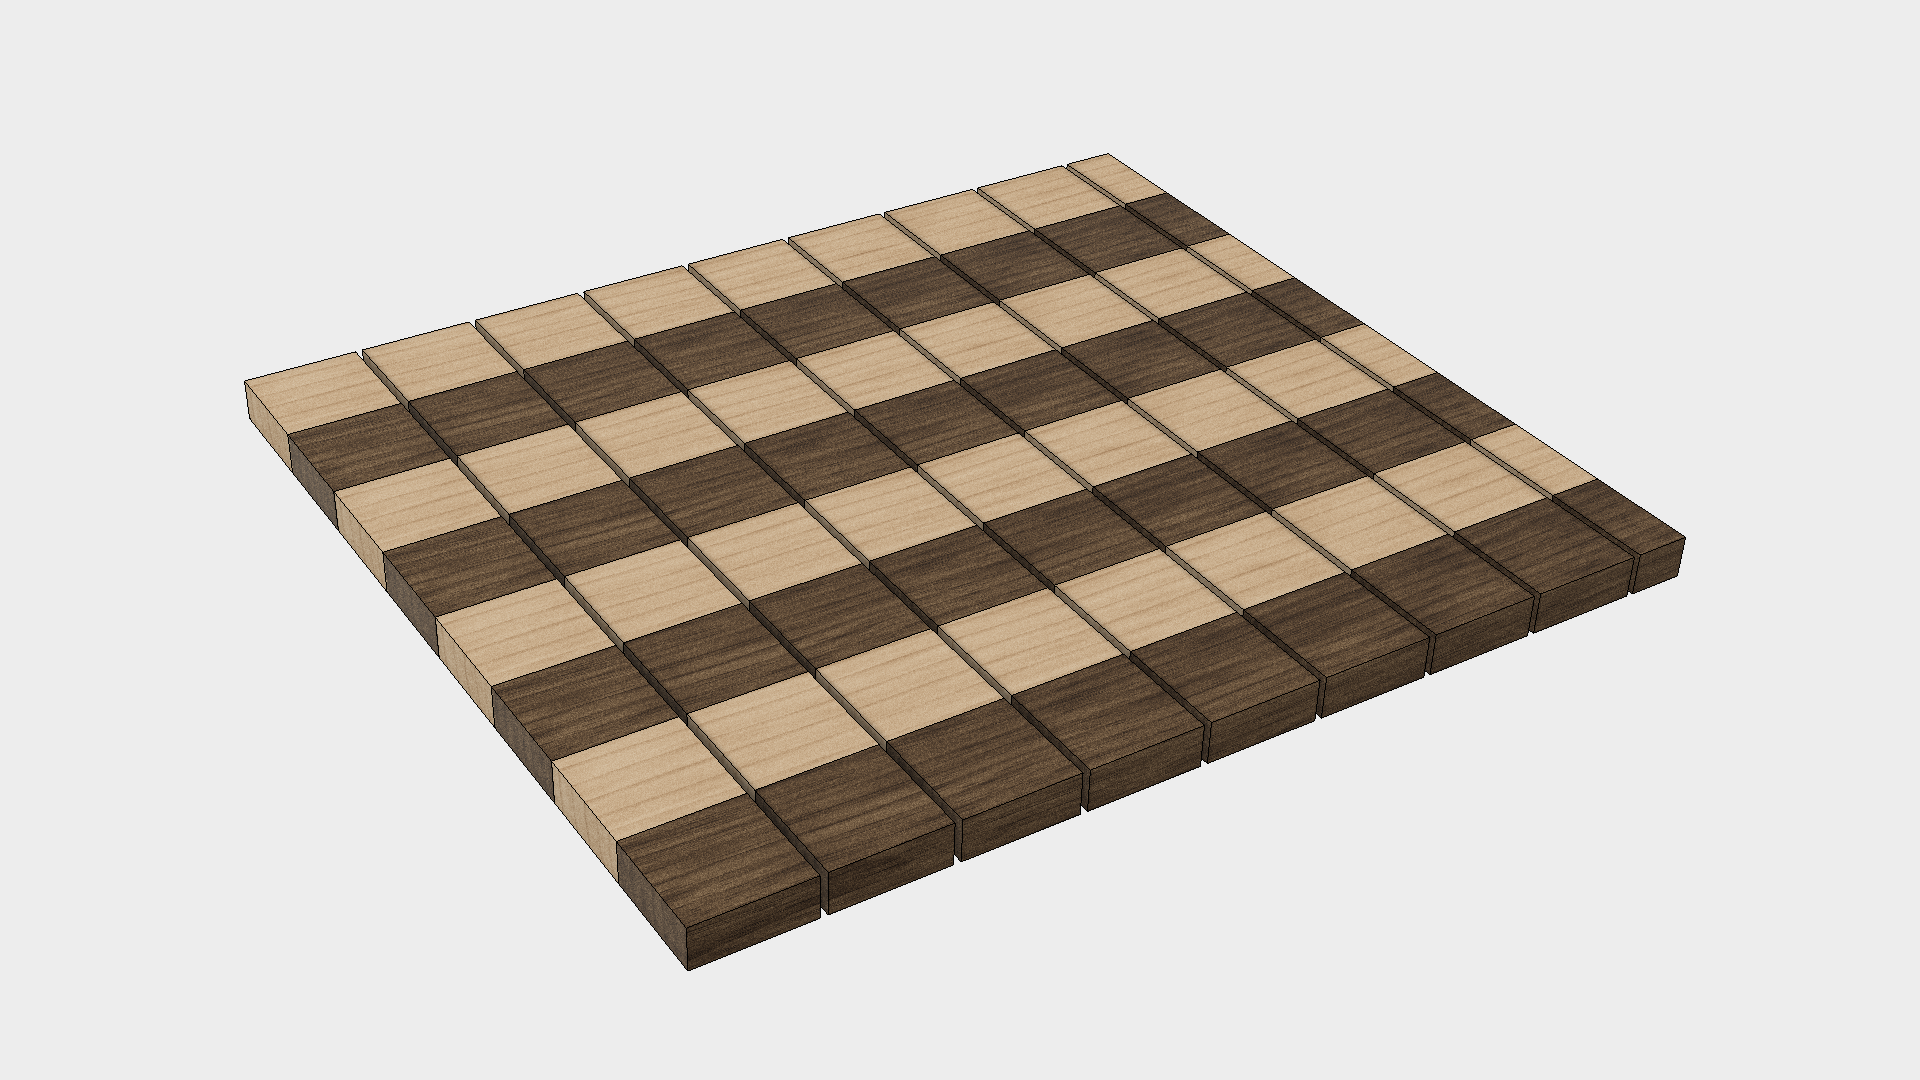 How to Make a Chess Board - Step 3